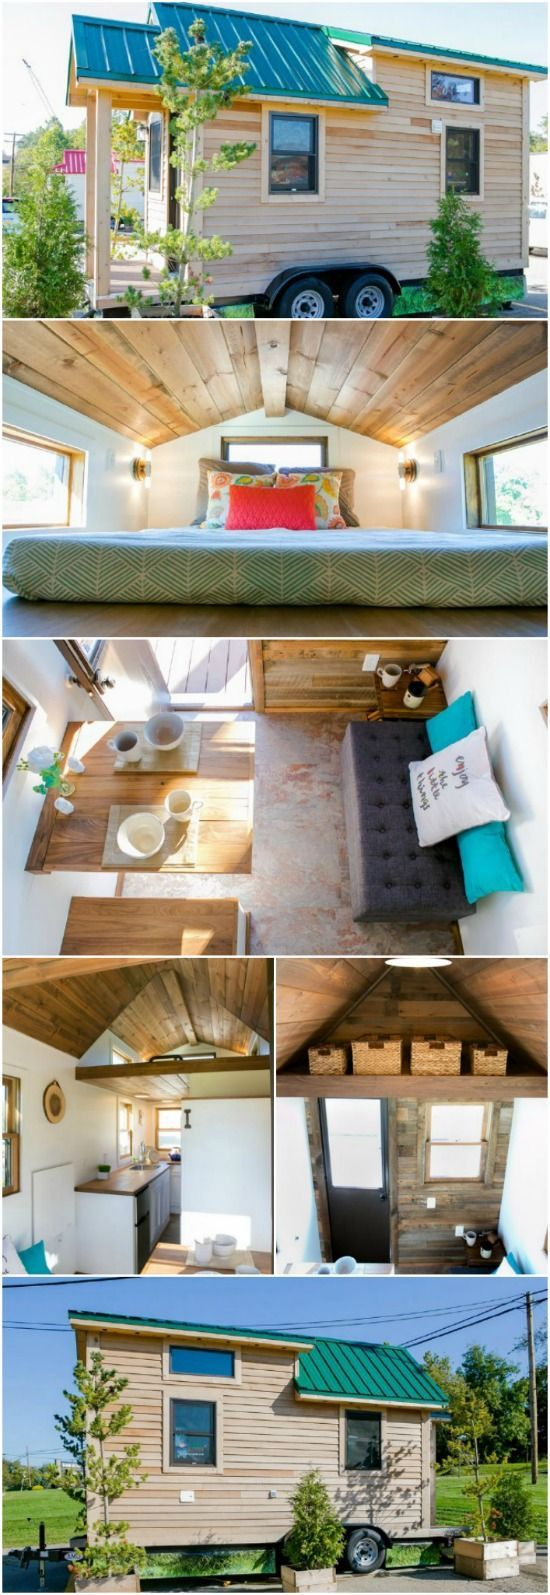 The Roving by 84 Lumber Packs a Powerful Punch in 154sf - Pennsylvania-based company, 84 Lumber, has a tiny house model that has caught our eye: The Roving. This 154 square foot tiny house on wheels is wrapped in rustic wood with a bright green metal roof. Inside, it has even more features which set it apart including a cork floor and wood accent wall. A fully outfitted Roving will cost you around $50,000 or you can get the shell for just $20,000.